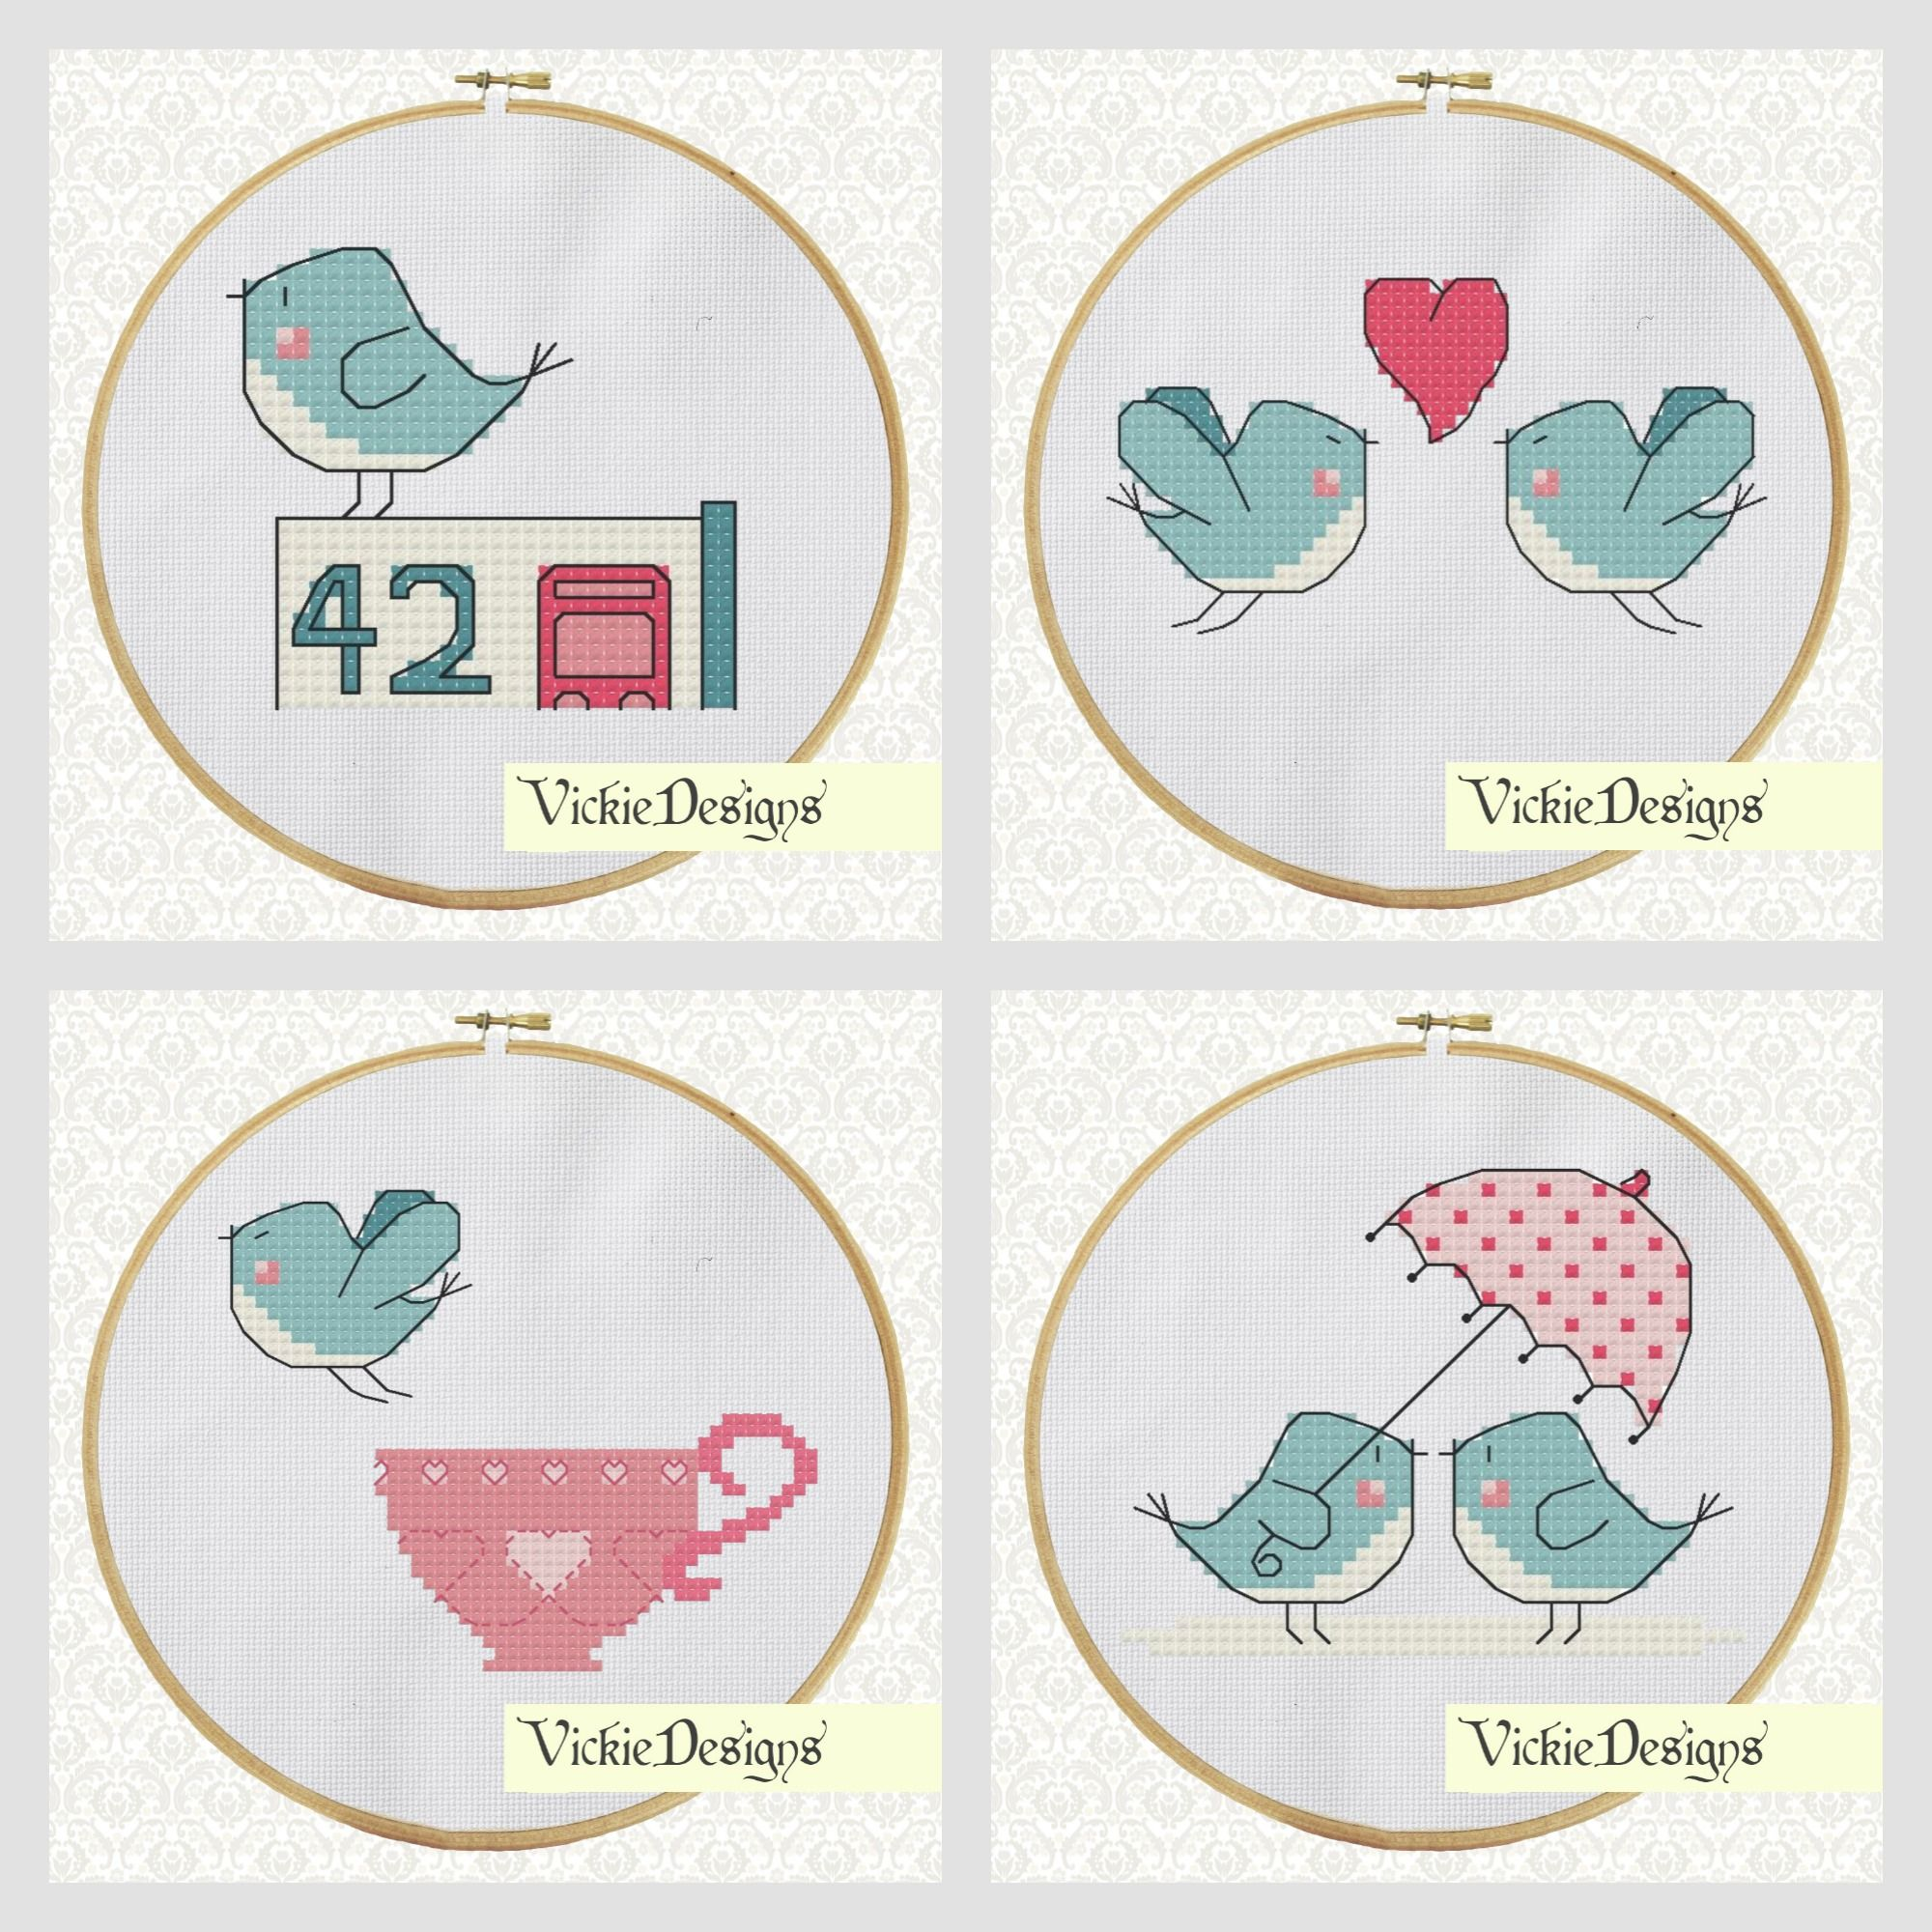 Cross Stitch Pattern available in my store!  https://www.etsy.com/uk/shop/VickieDesigns?ref=si_shop